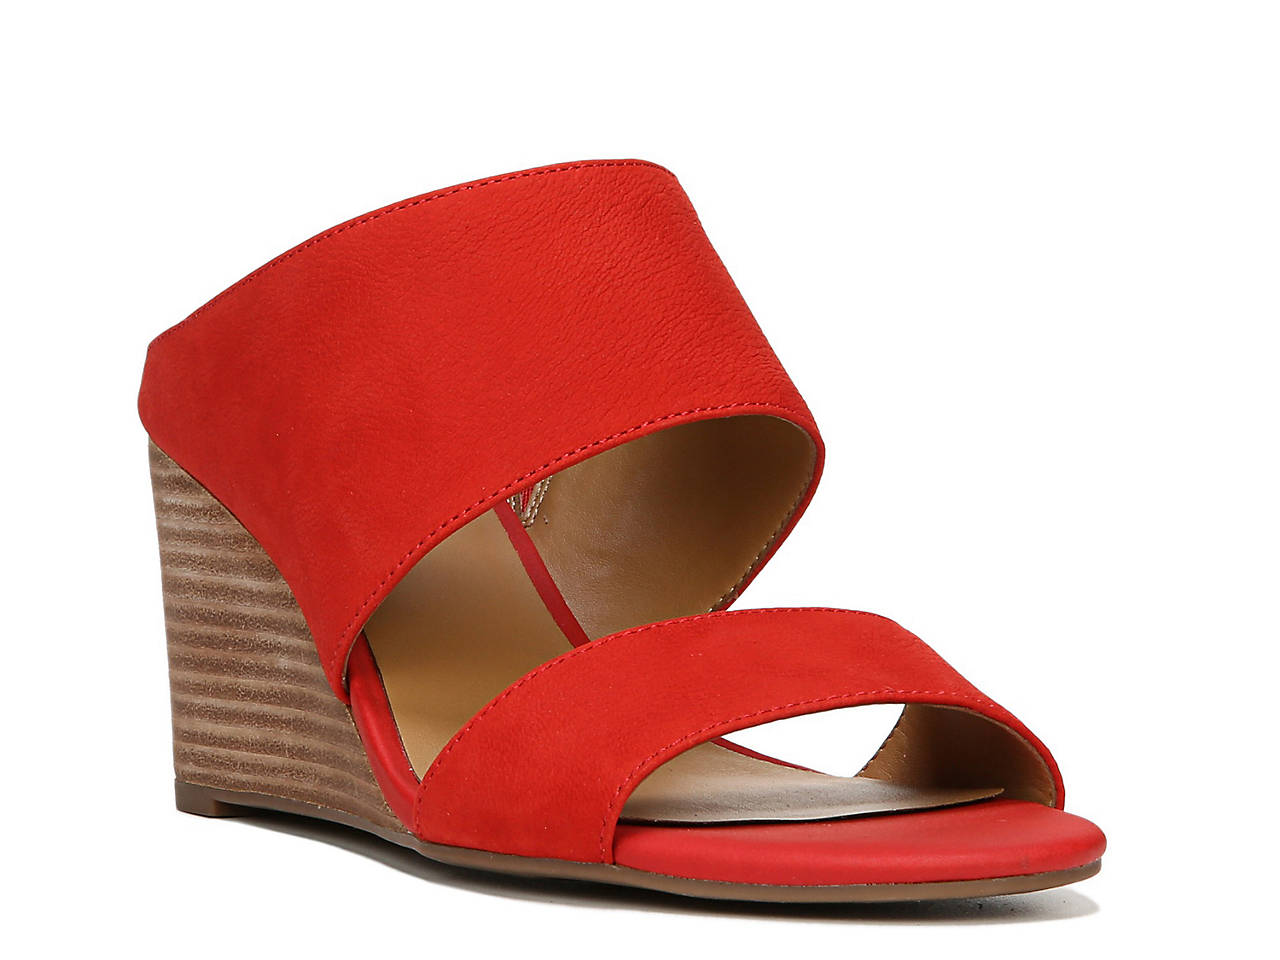 68462930fe3 Franco Sarto Mingle Wedge Sandal Women s Shoes